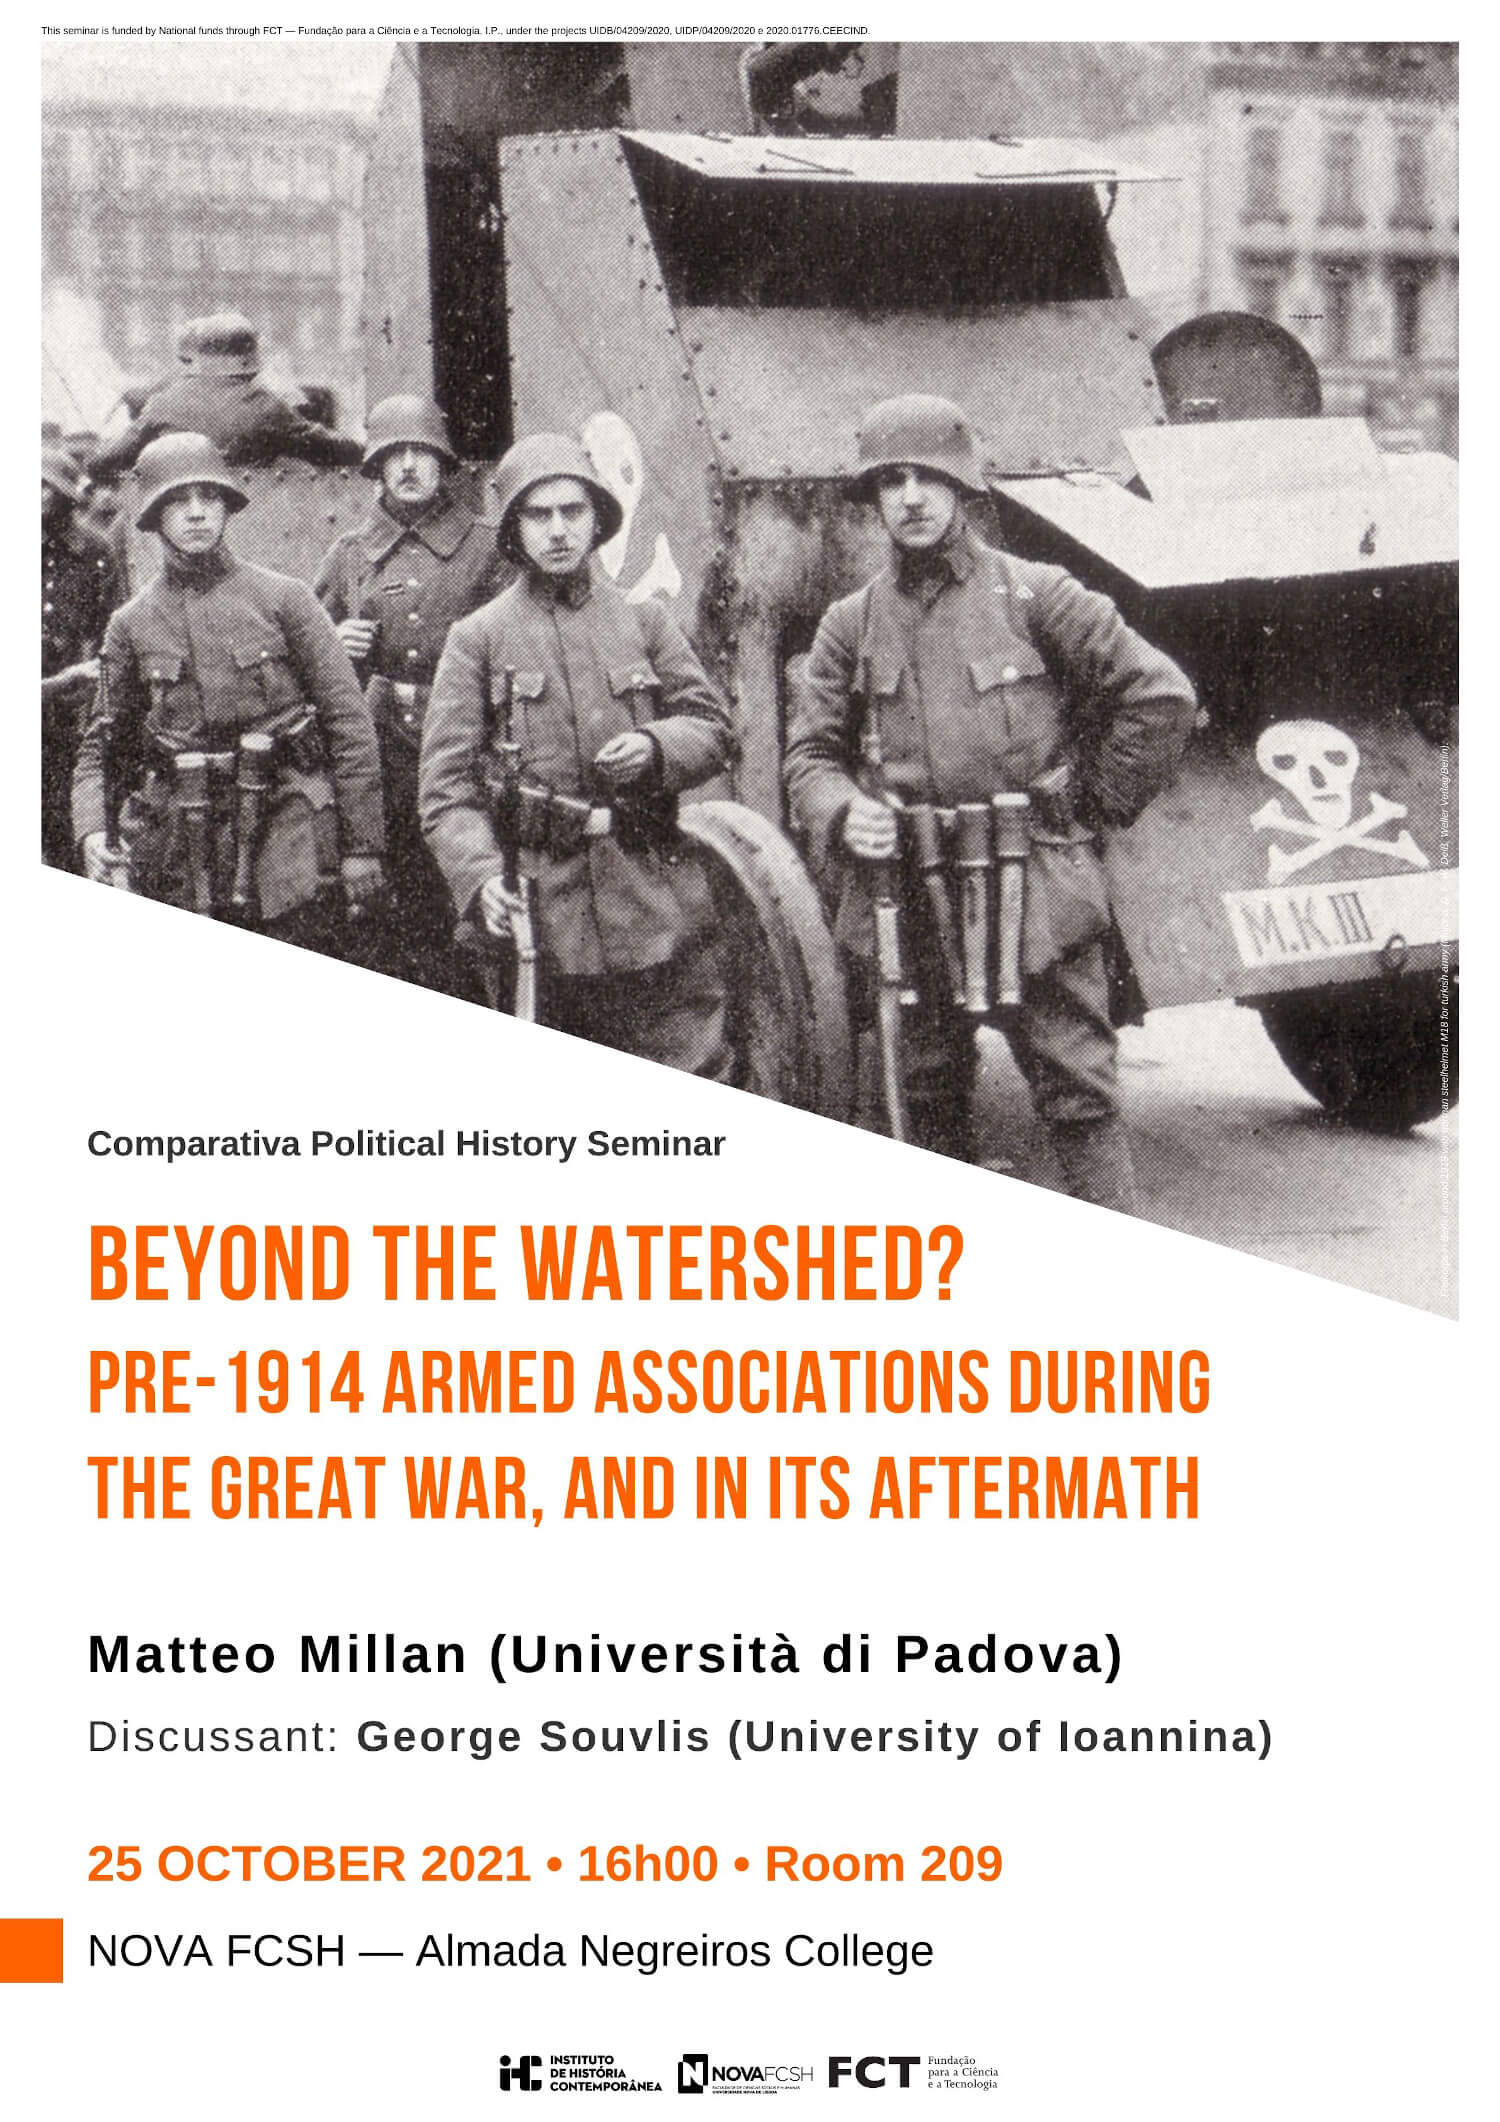 """Cartaz do seminário """"Beyond the watershed? Pre-1914 armed associations during the Great War, and in its aftermath"""""""